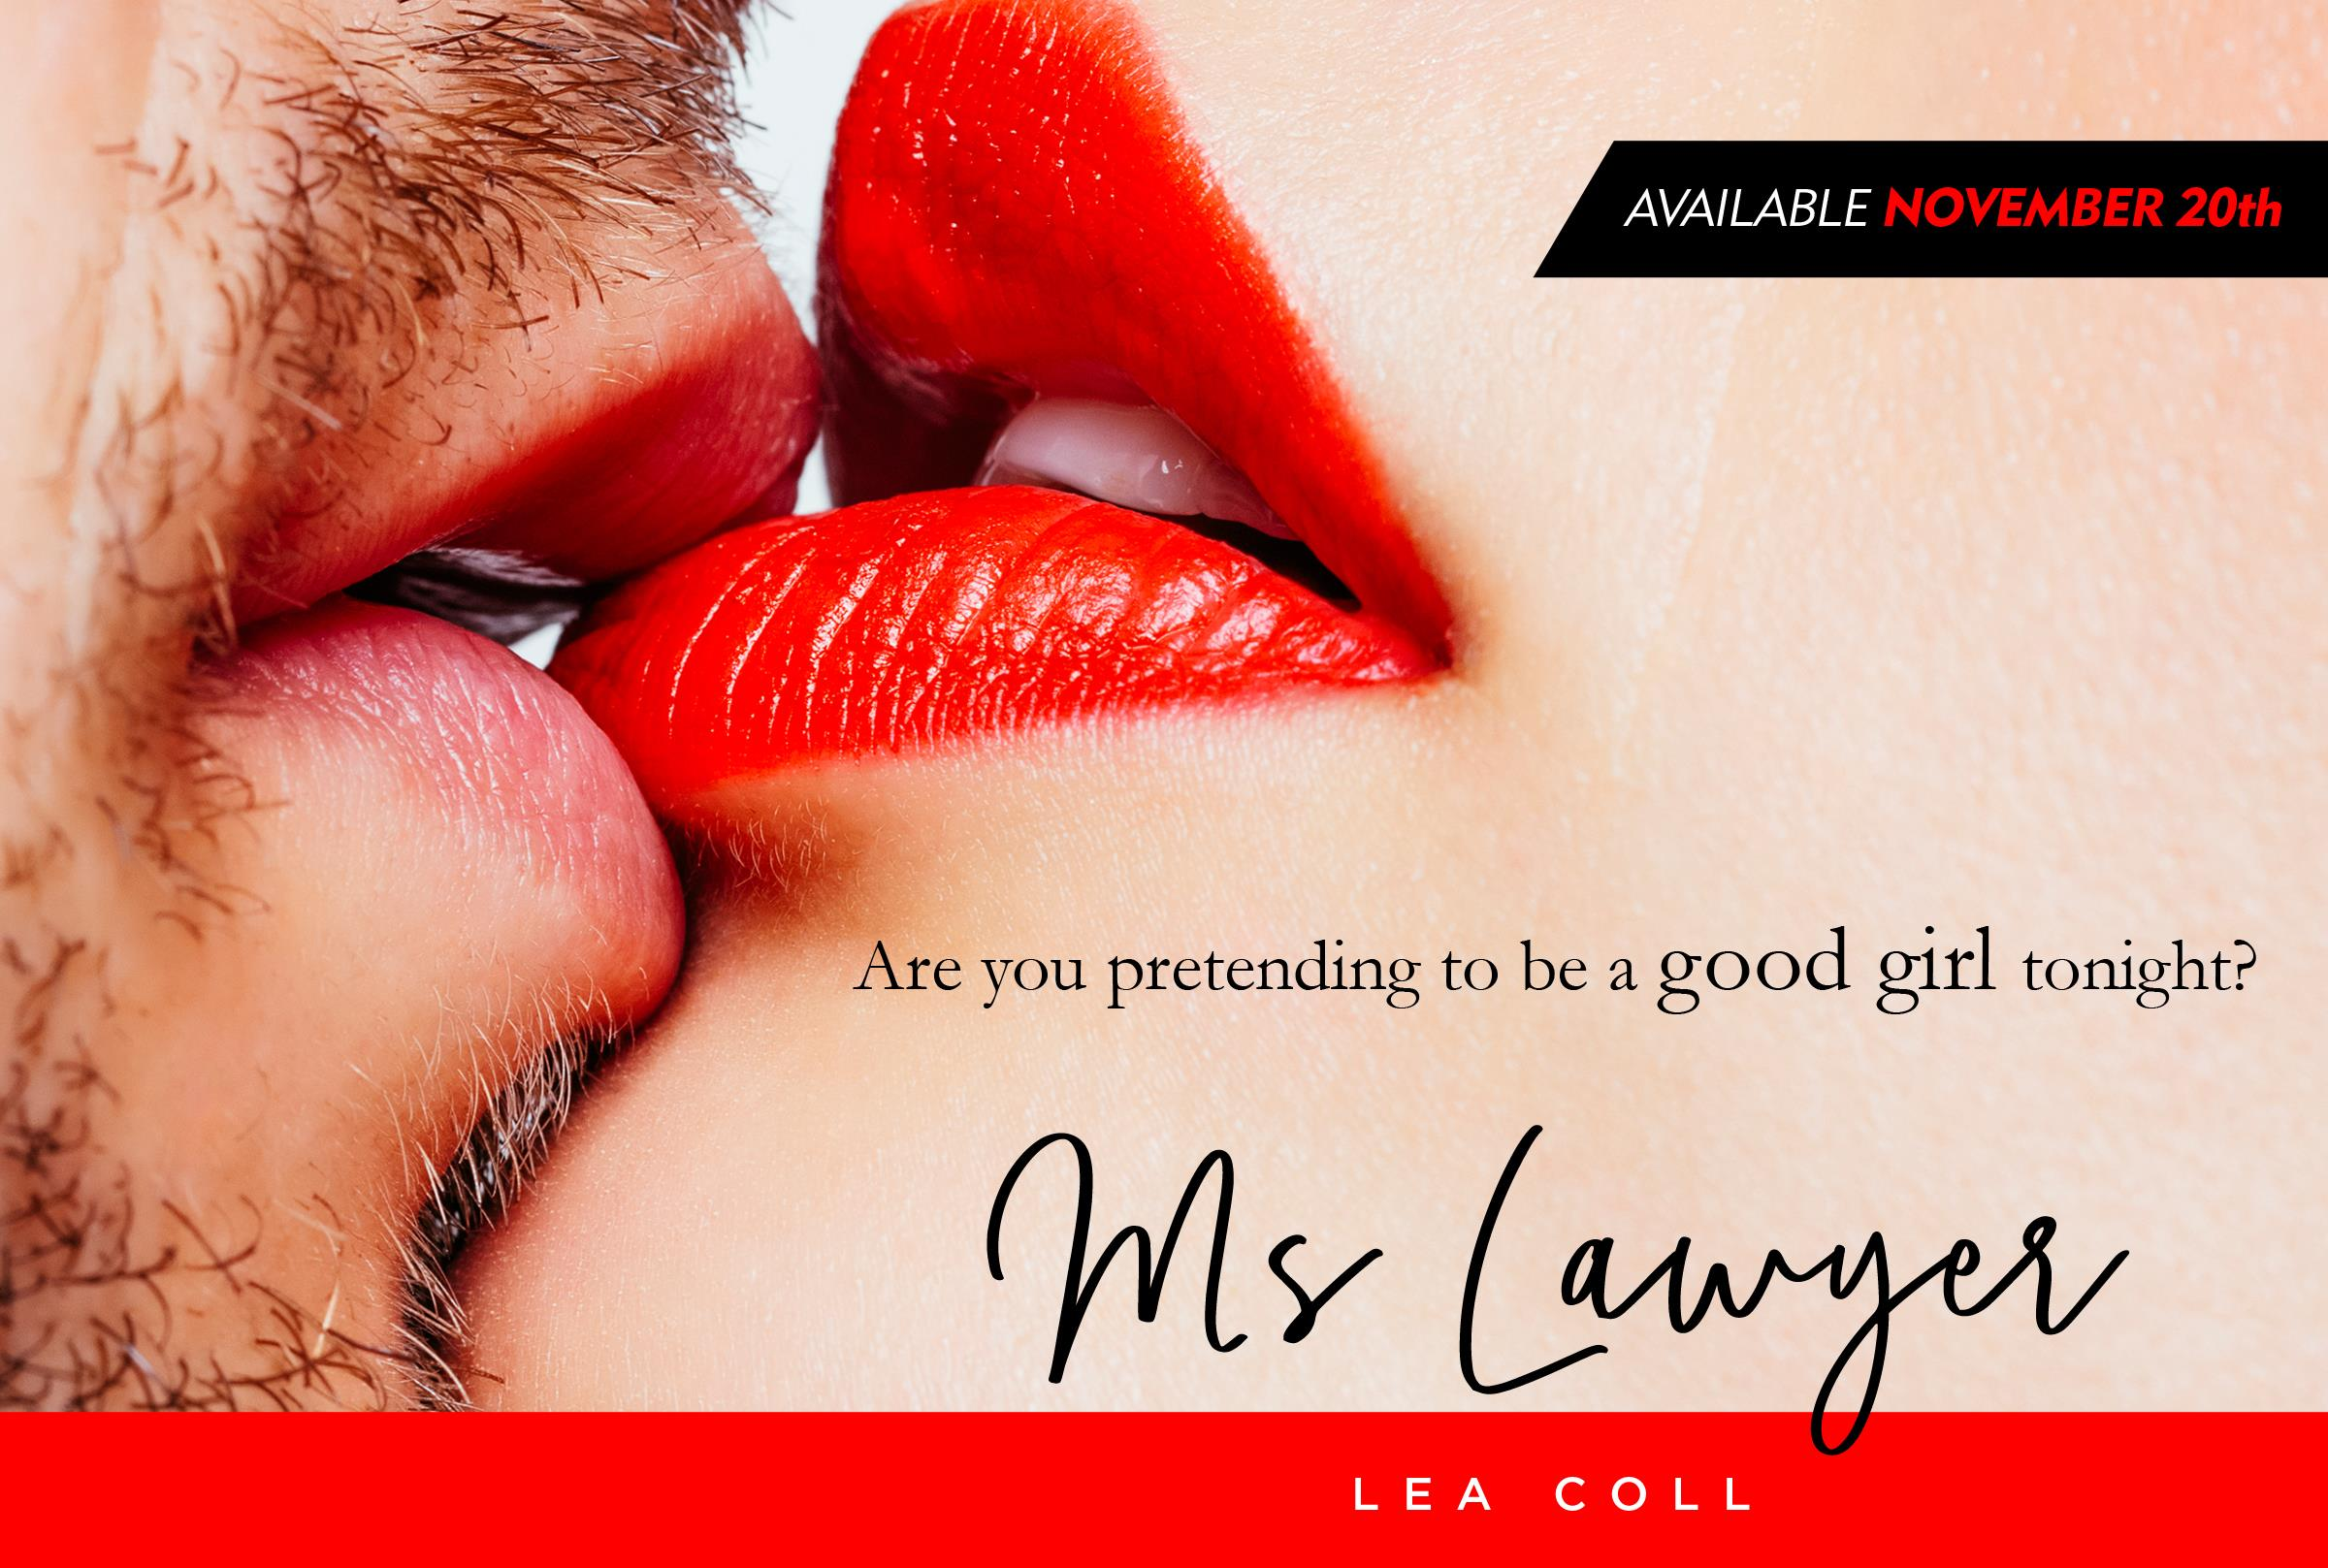 """Are you pretending to be a good girl tonight?"" MS LAWYER by Lea Coll Available November 20th"